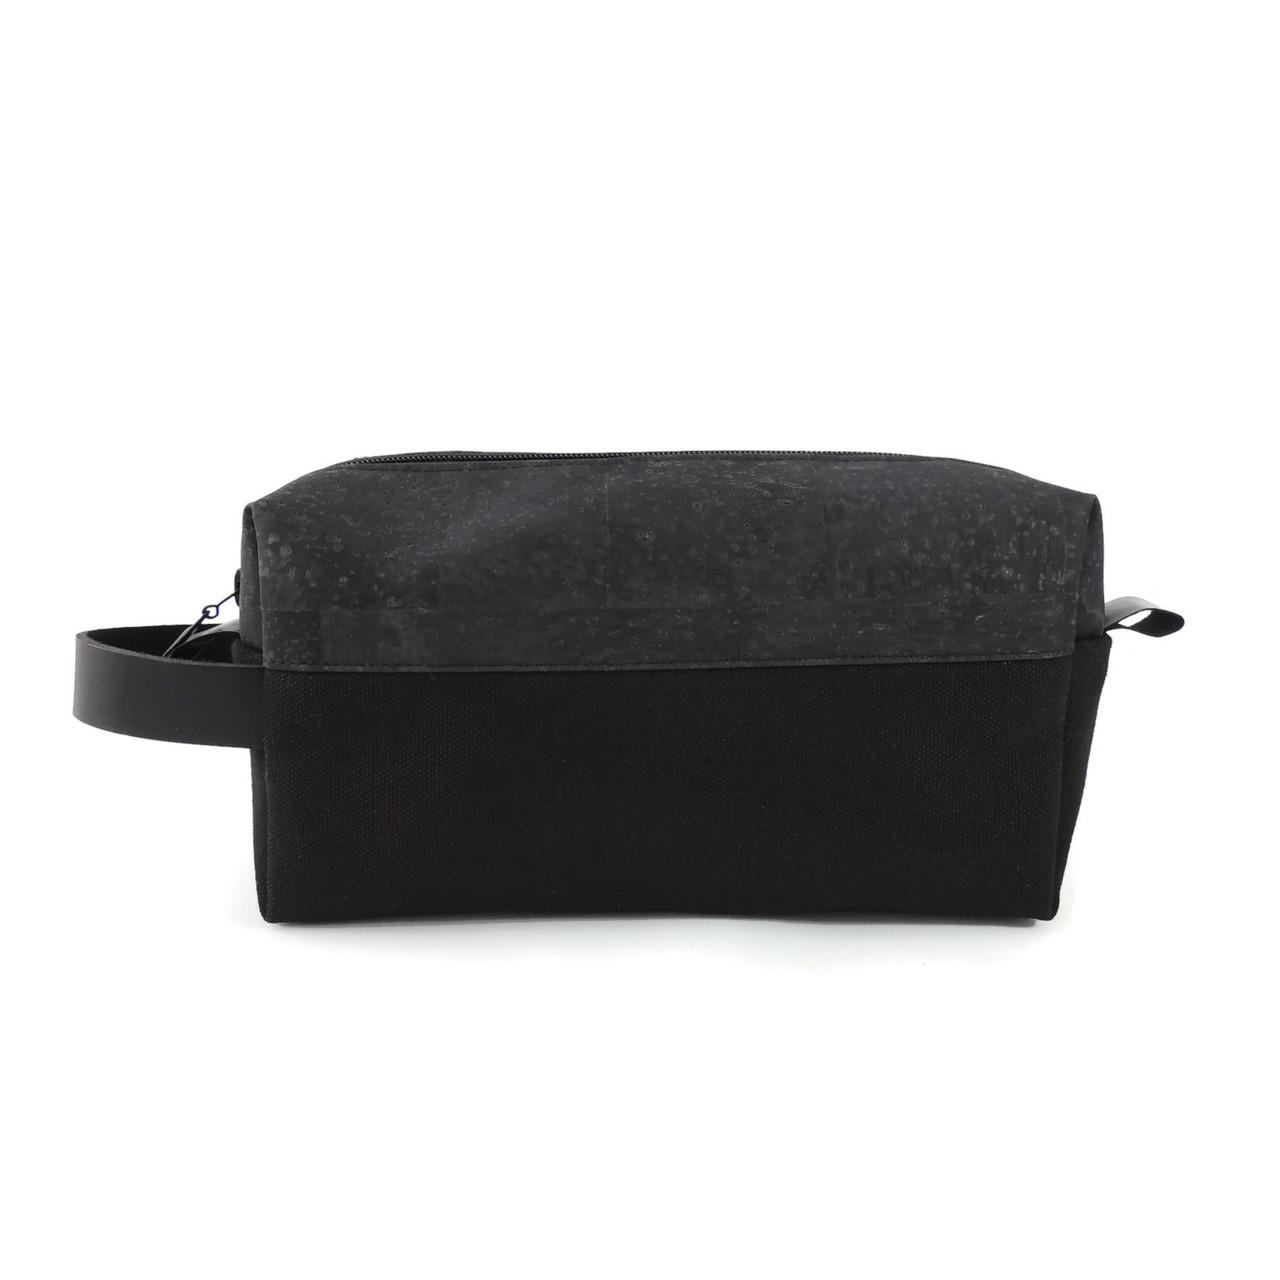 Dopp Kit in Black Cork